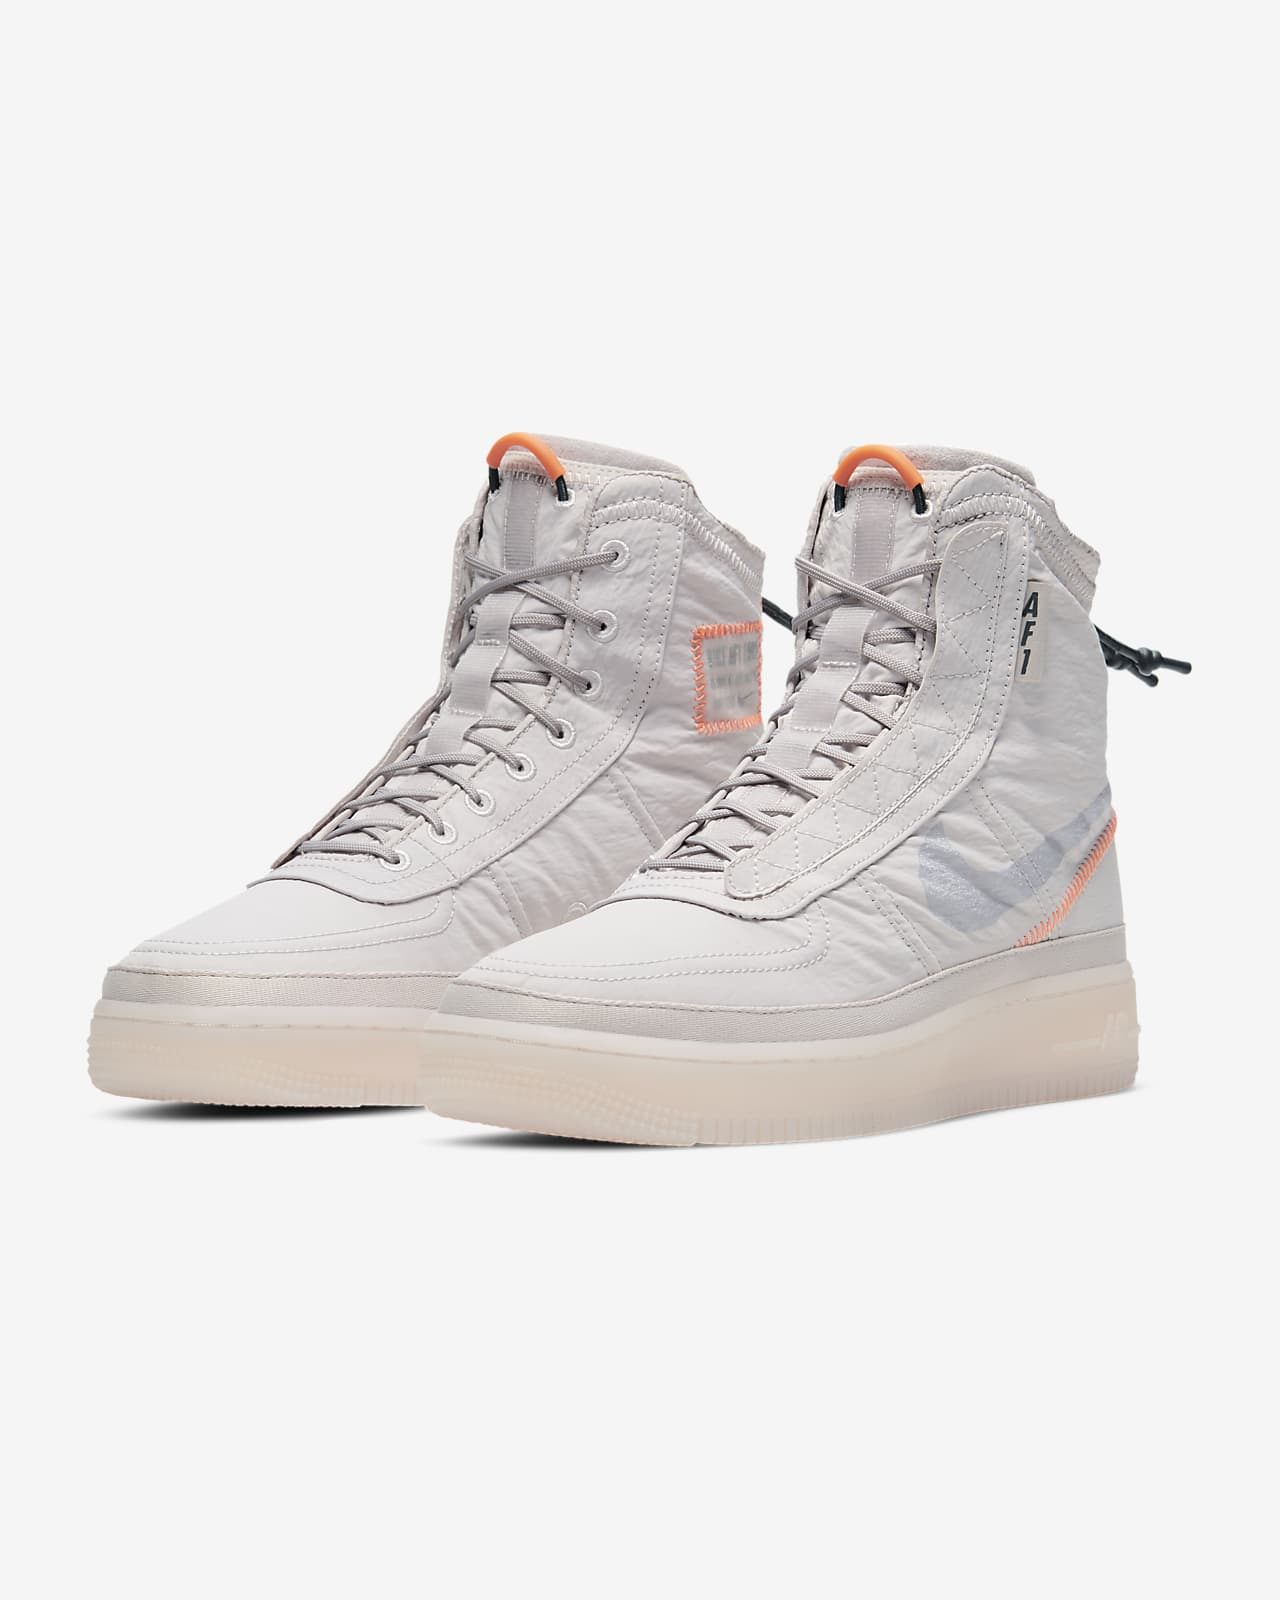 Nike Air Force 1 Shell Women S Shoe Nike Jp The nike air force 1 low type or af1 type in short, is part of the brand's conceptual n.354 series that reimagines the iconic silhouette. nike air force 1 shell women s shoe